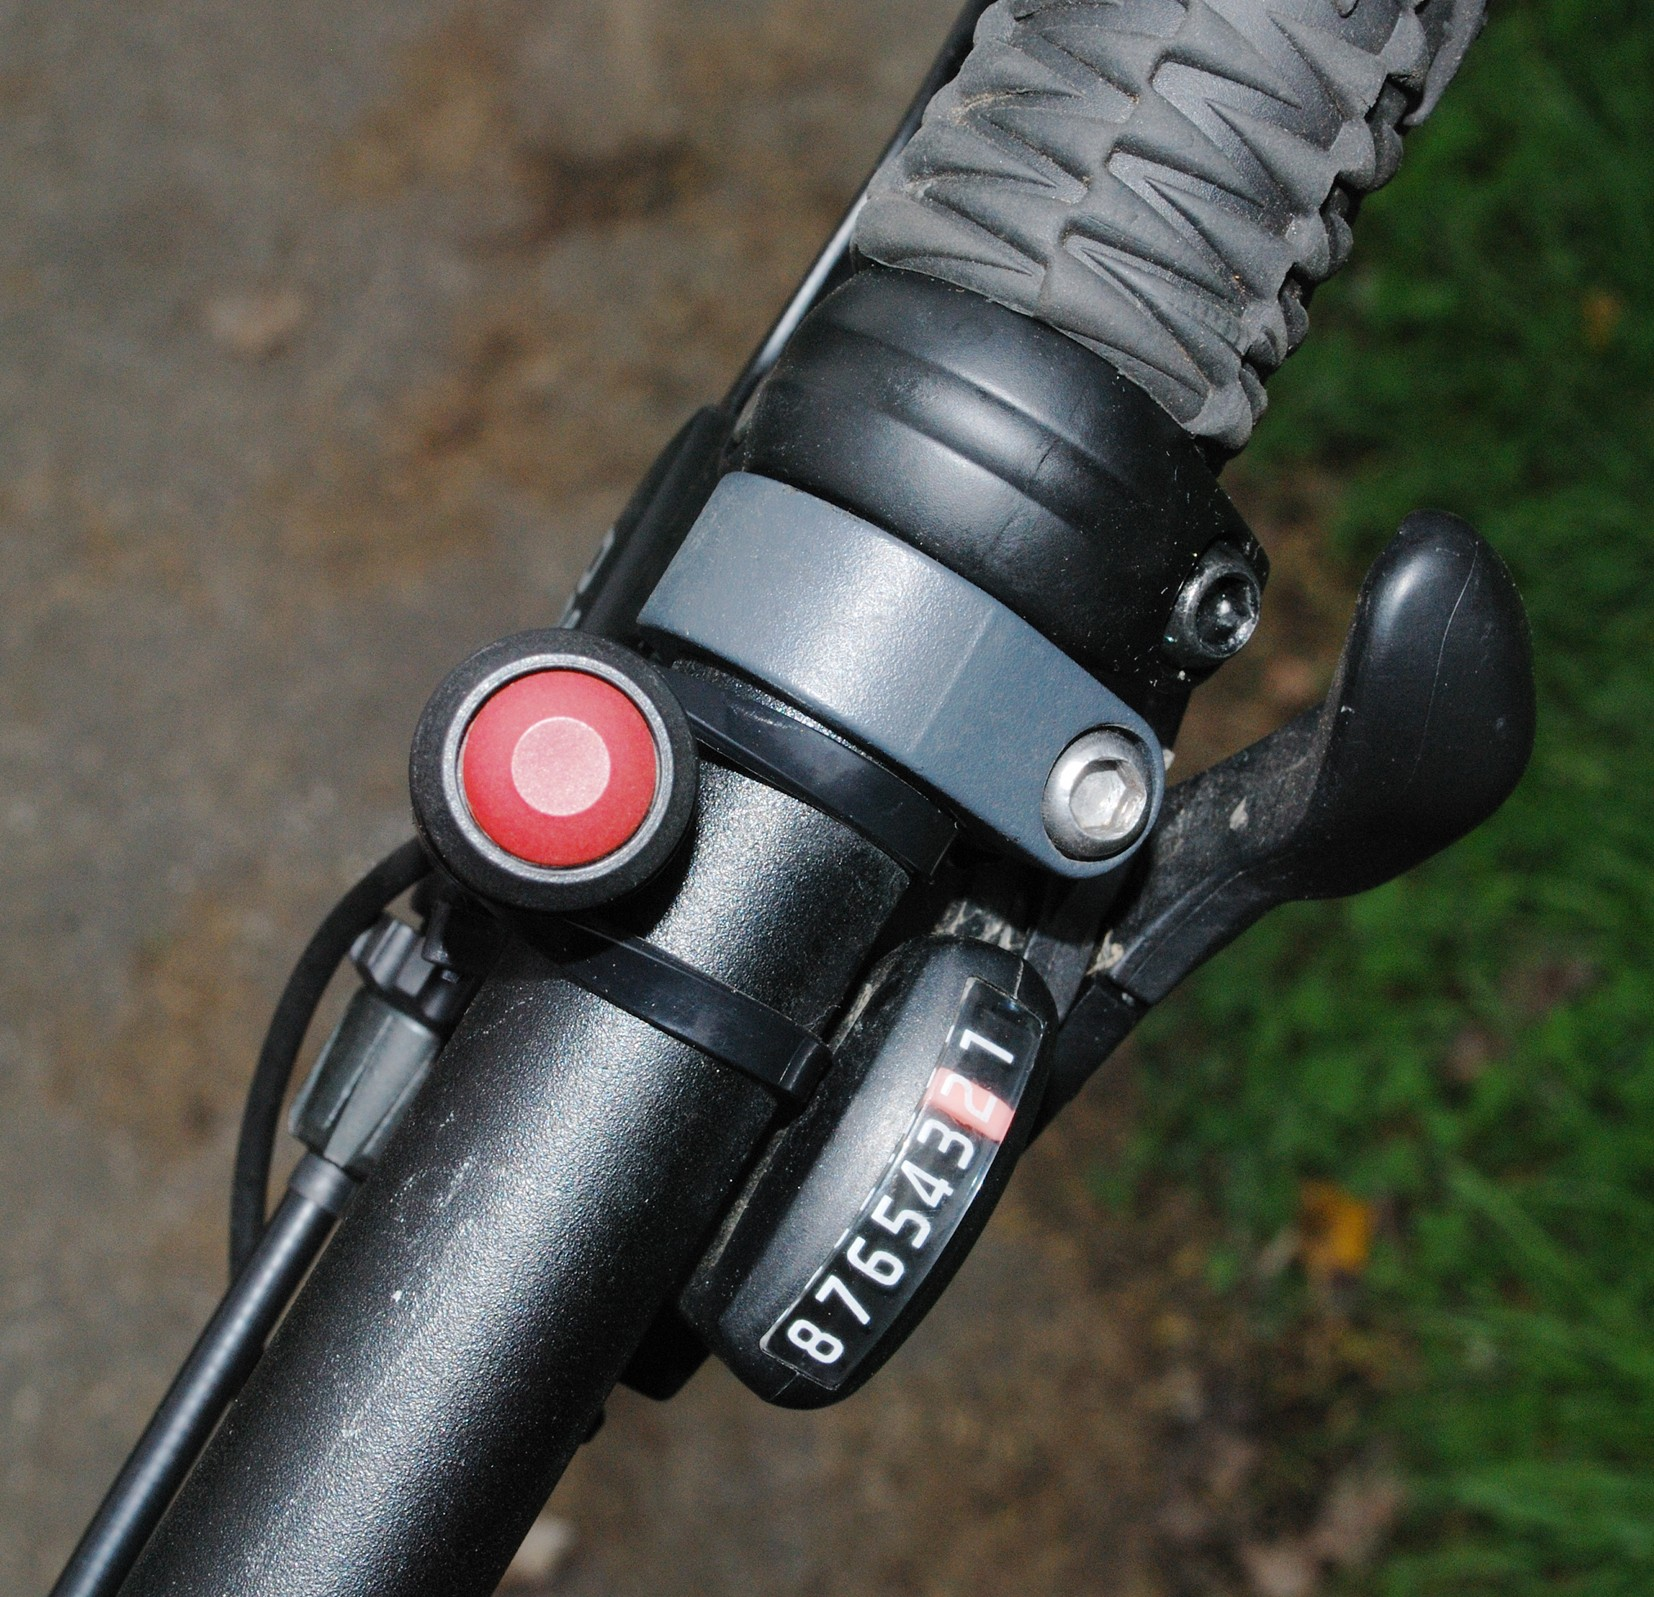 The Gruber is controlled by a simple on off button but it can also be used to set motor speed